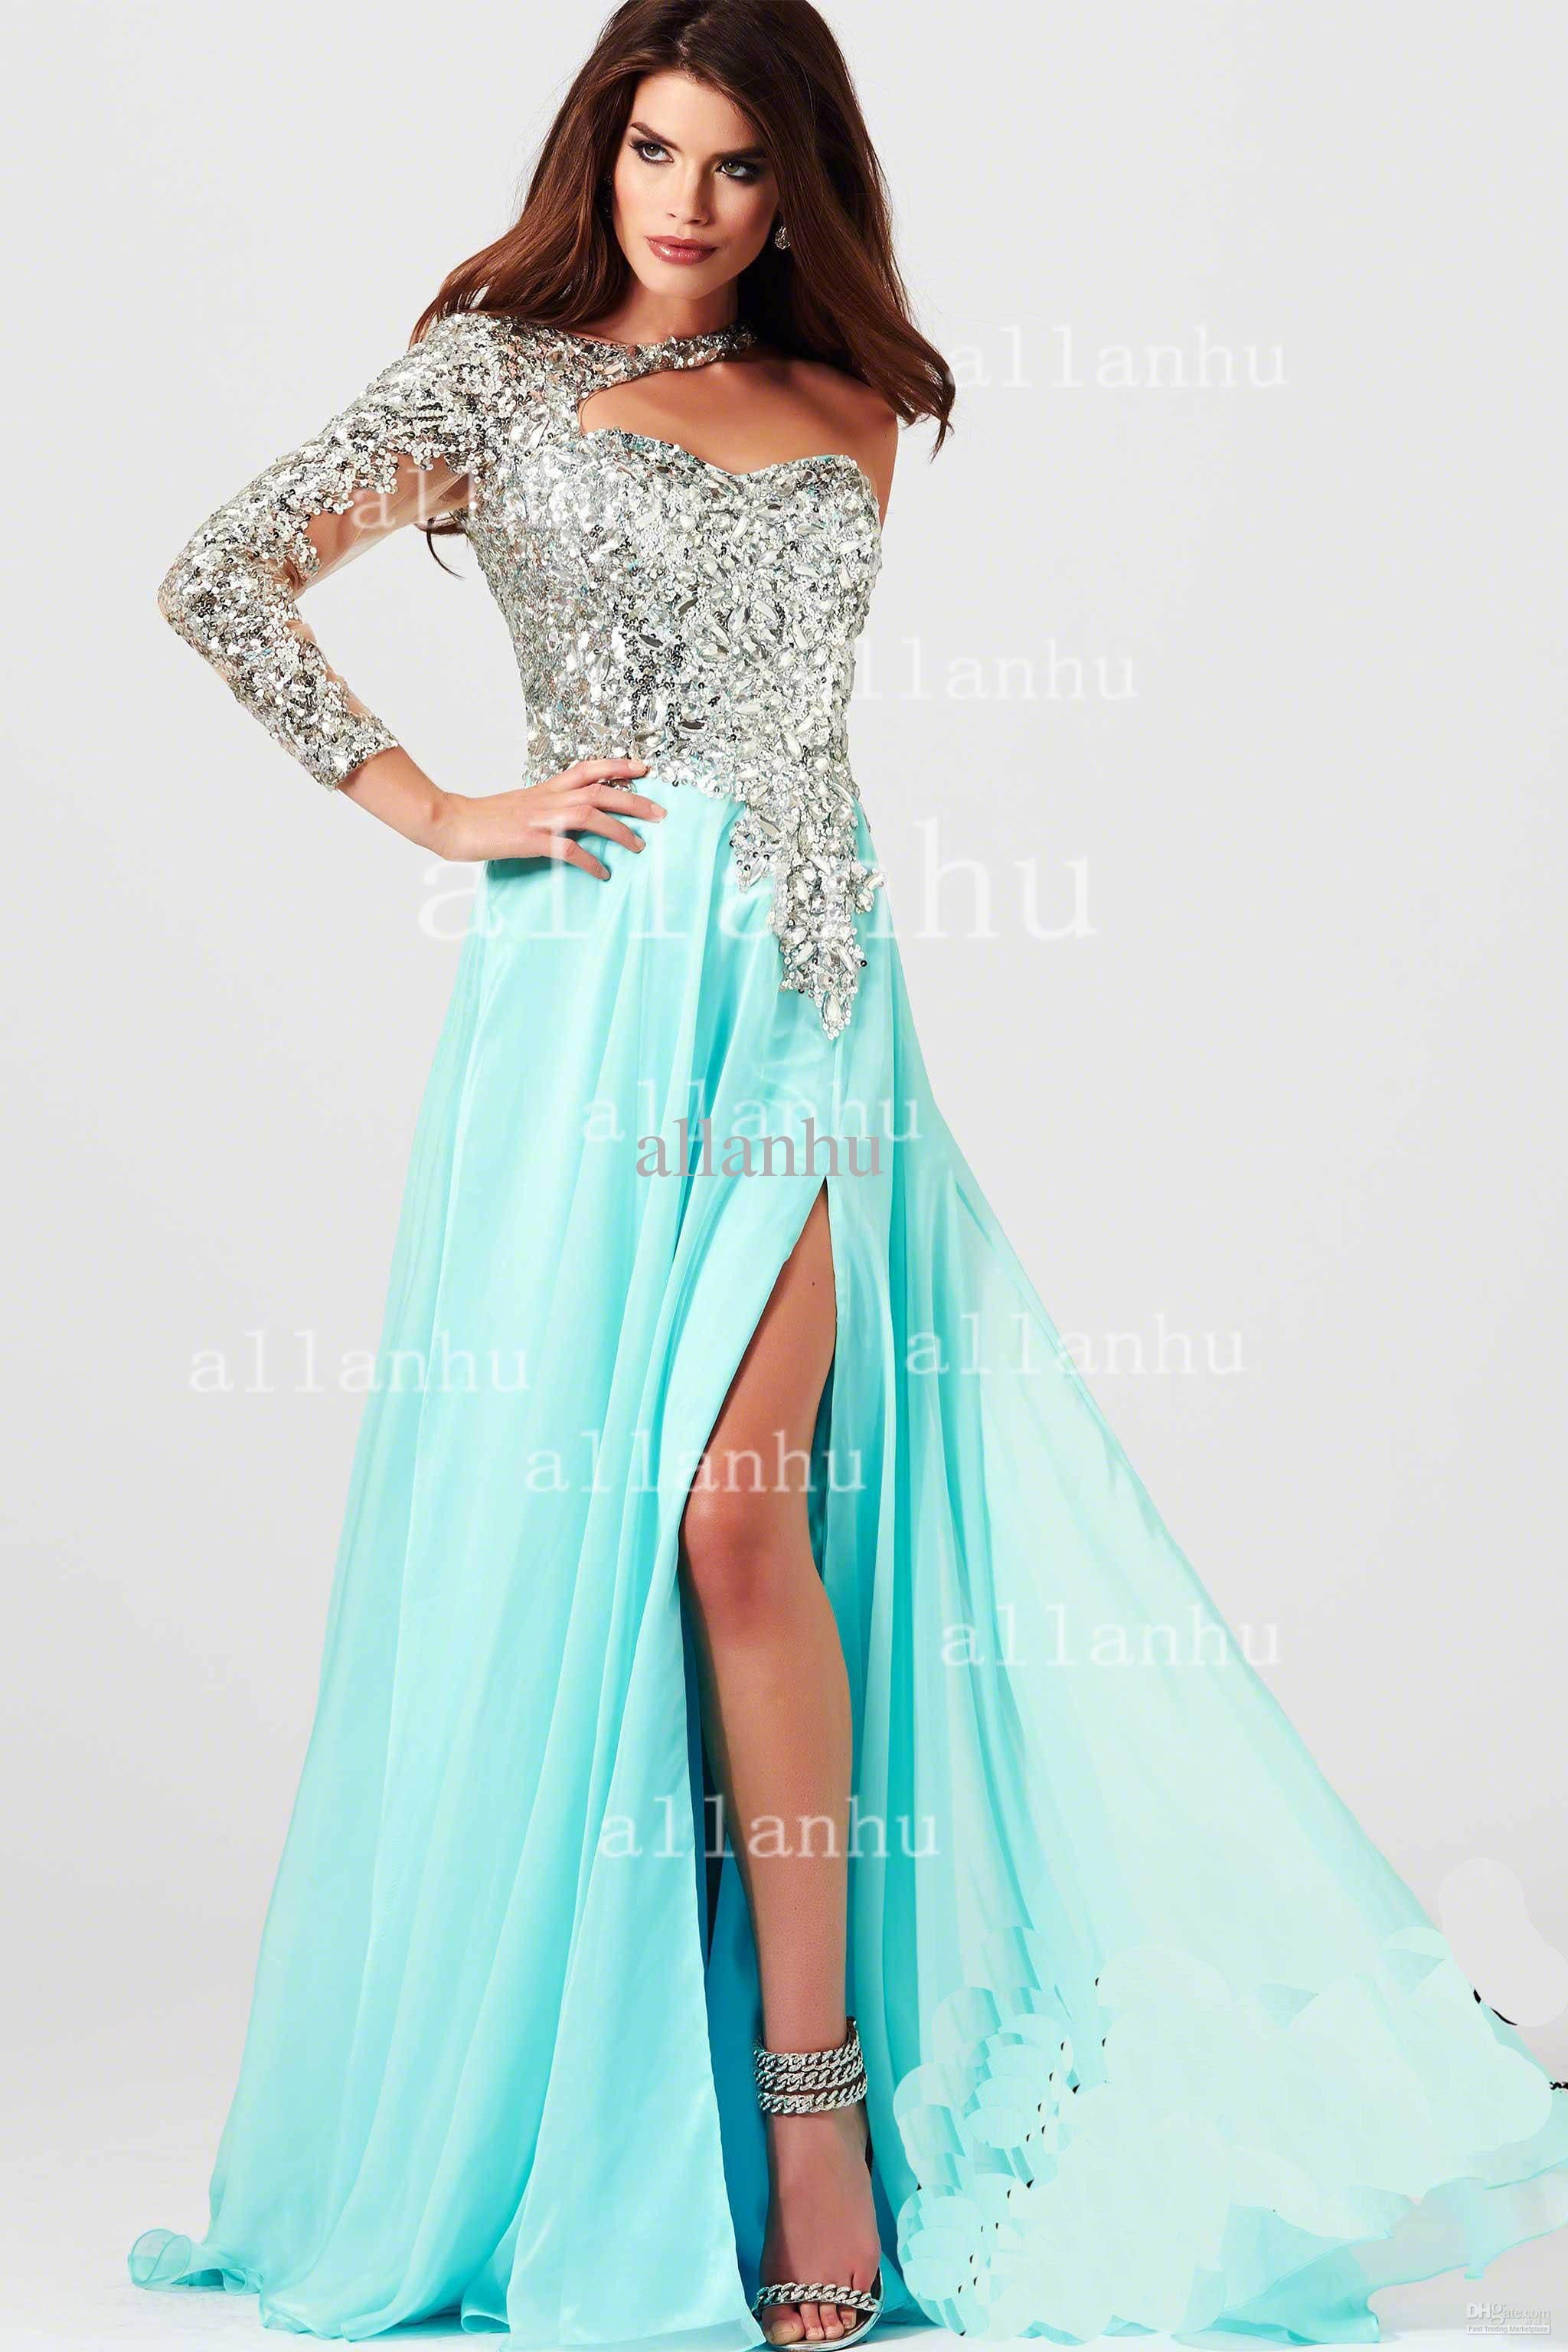 Cheap Evening Gowns - Discount 2014 Prom Dresses One Shoulder Sheer ...